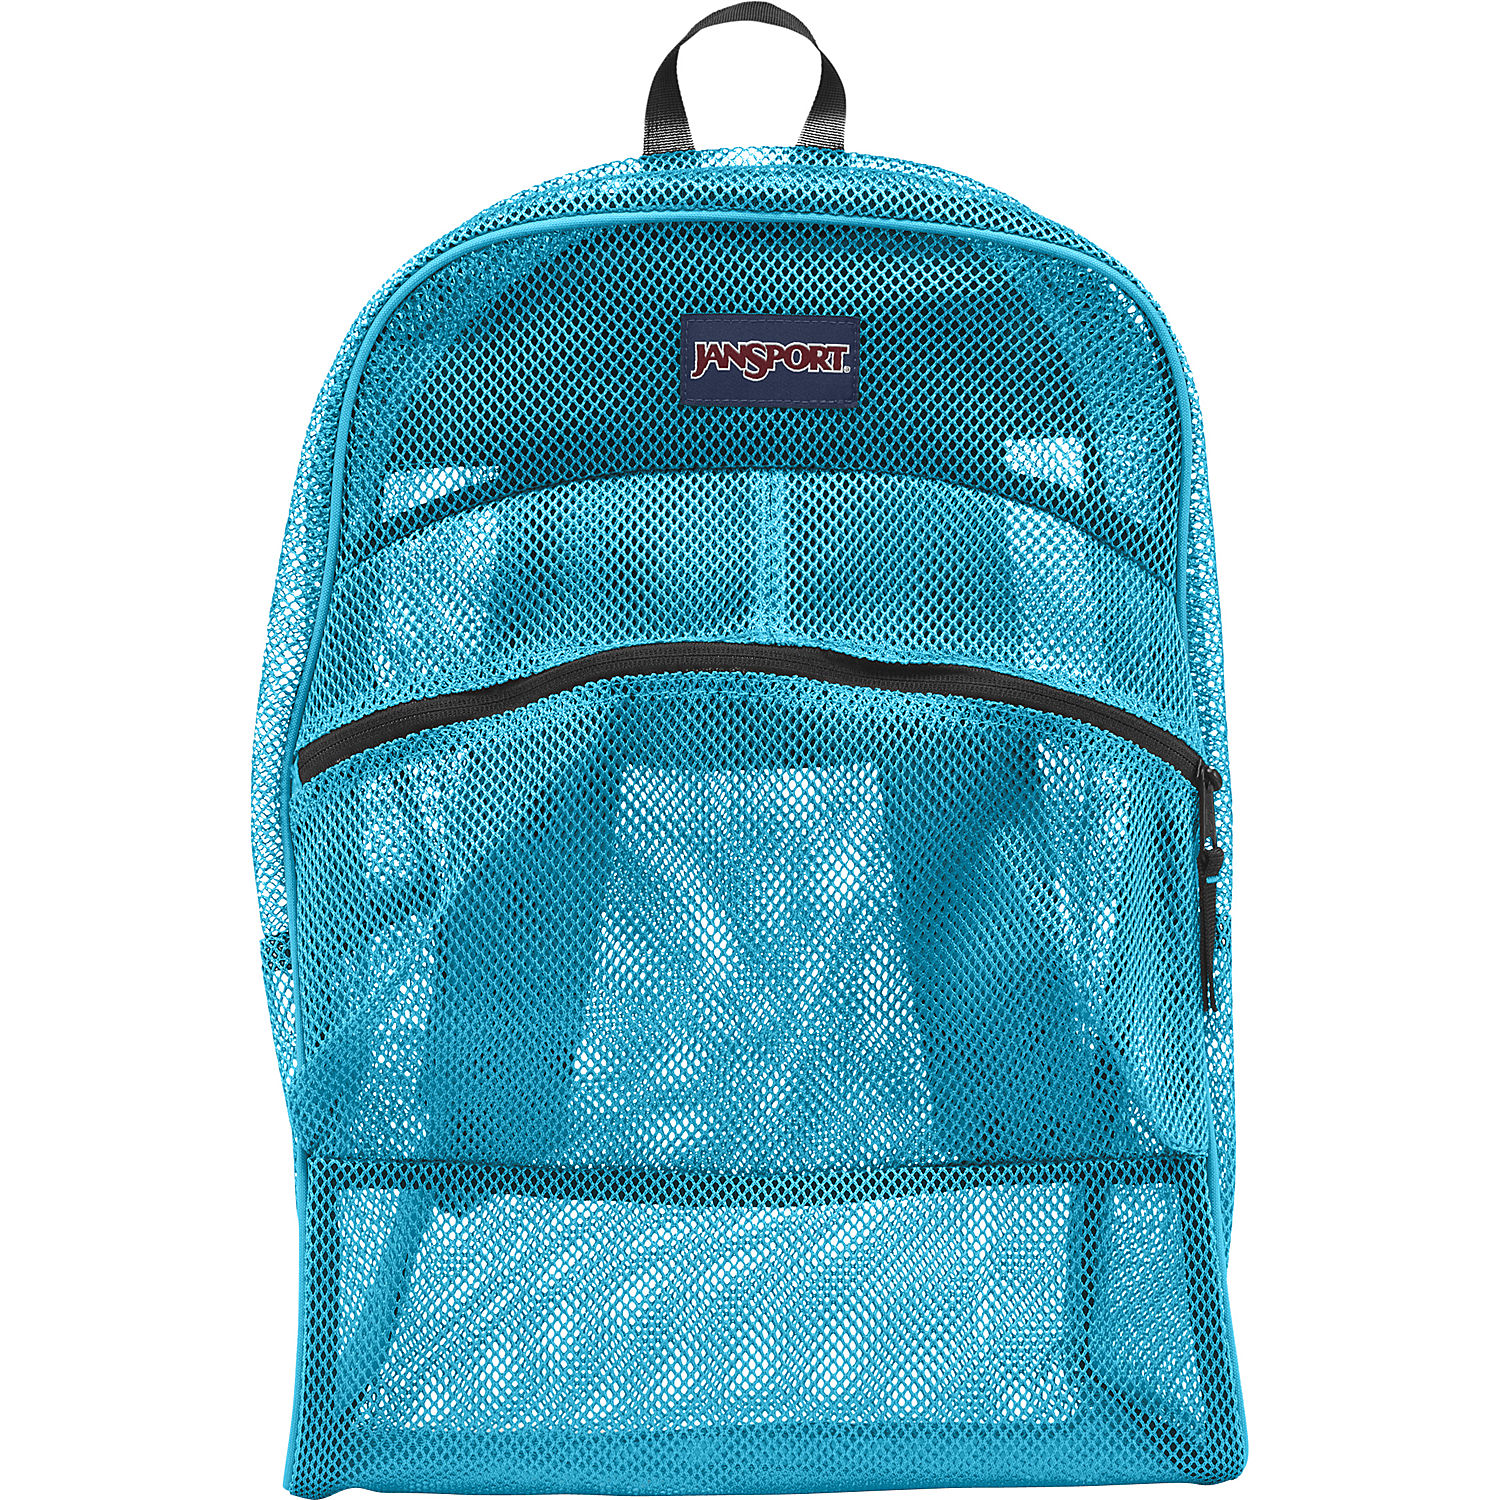 JanSport Mesh Pack School Backpack - Mammoth Blue